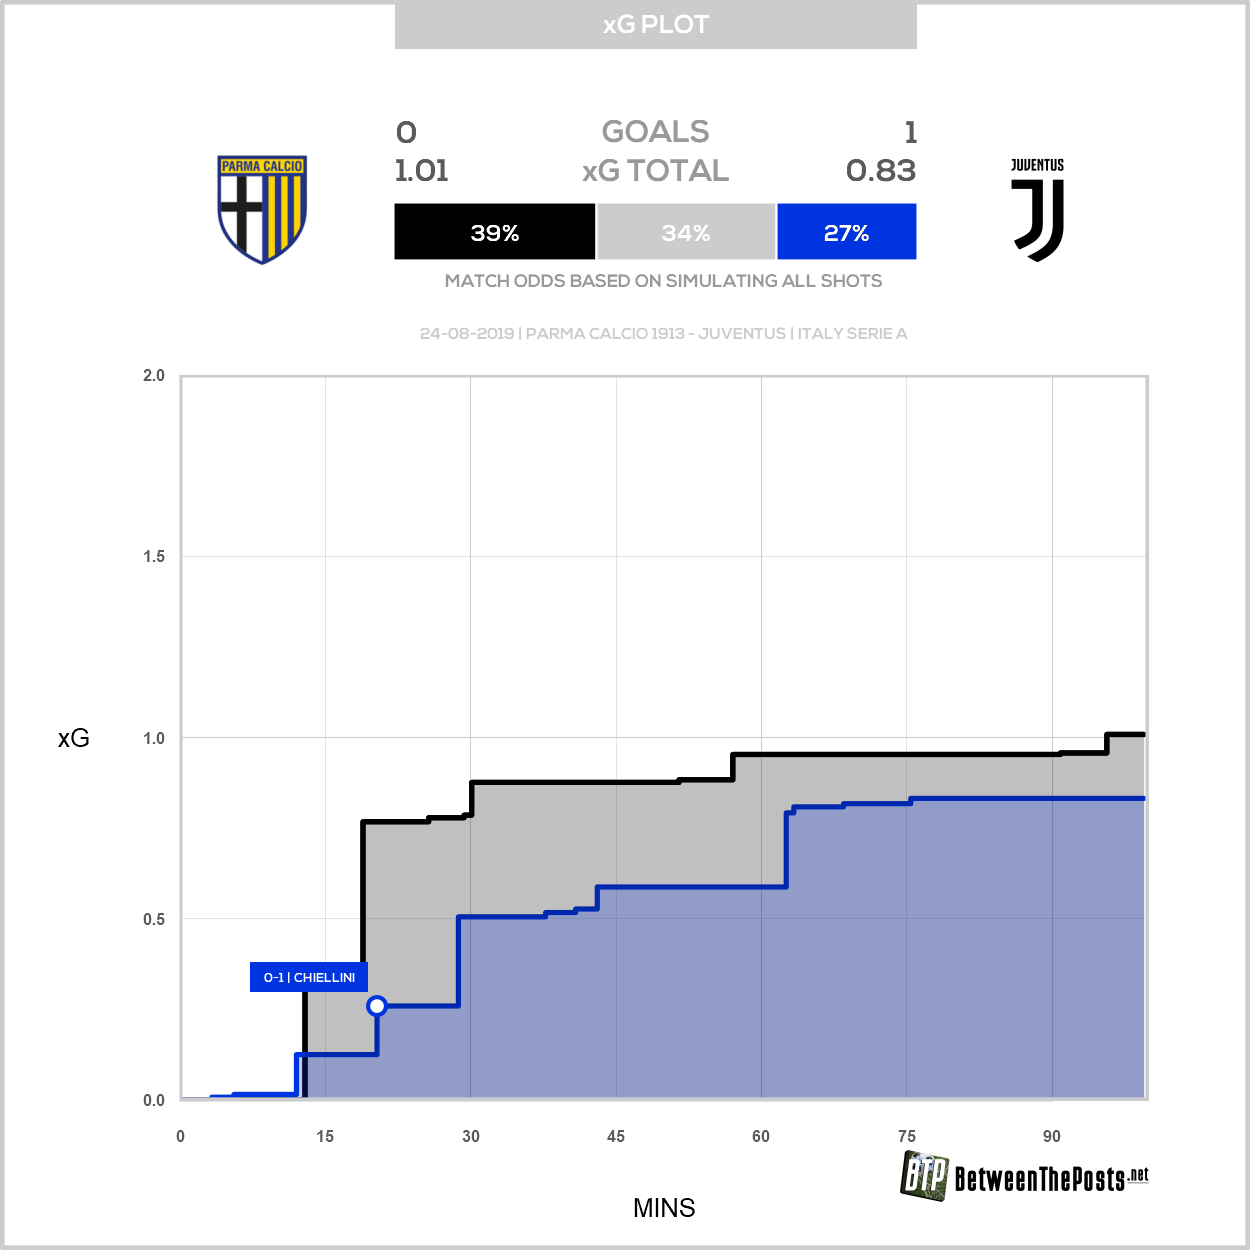 Expected goals plot Parma Calcio 1913 Juventus 0-1 Serie A